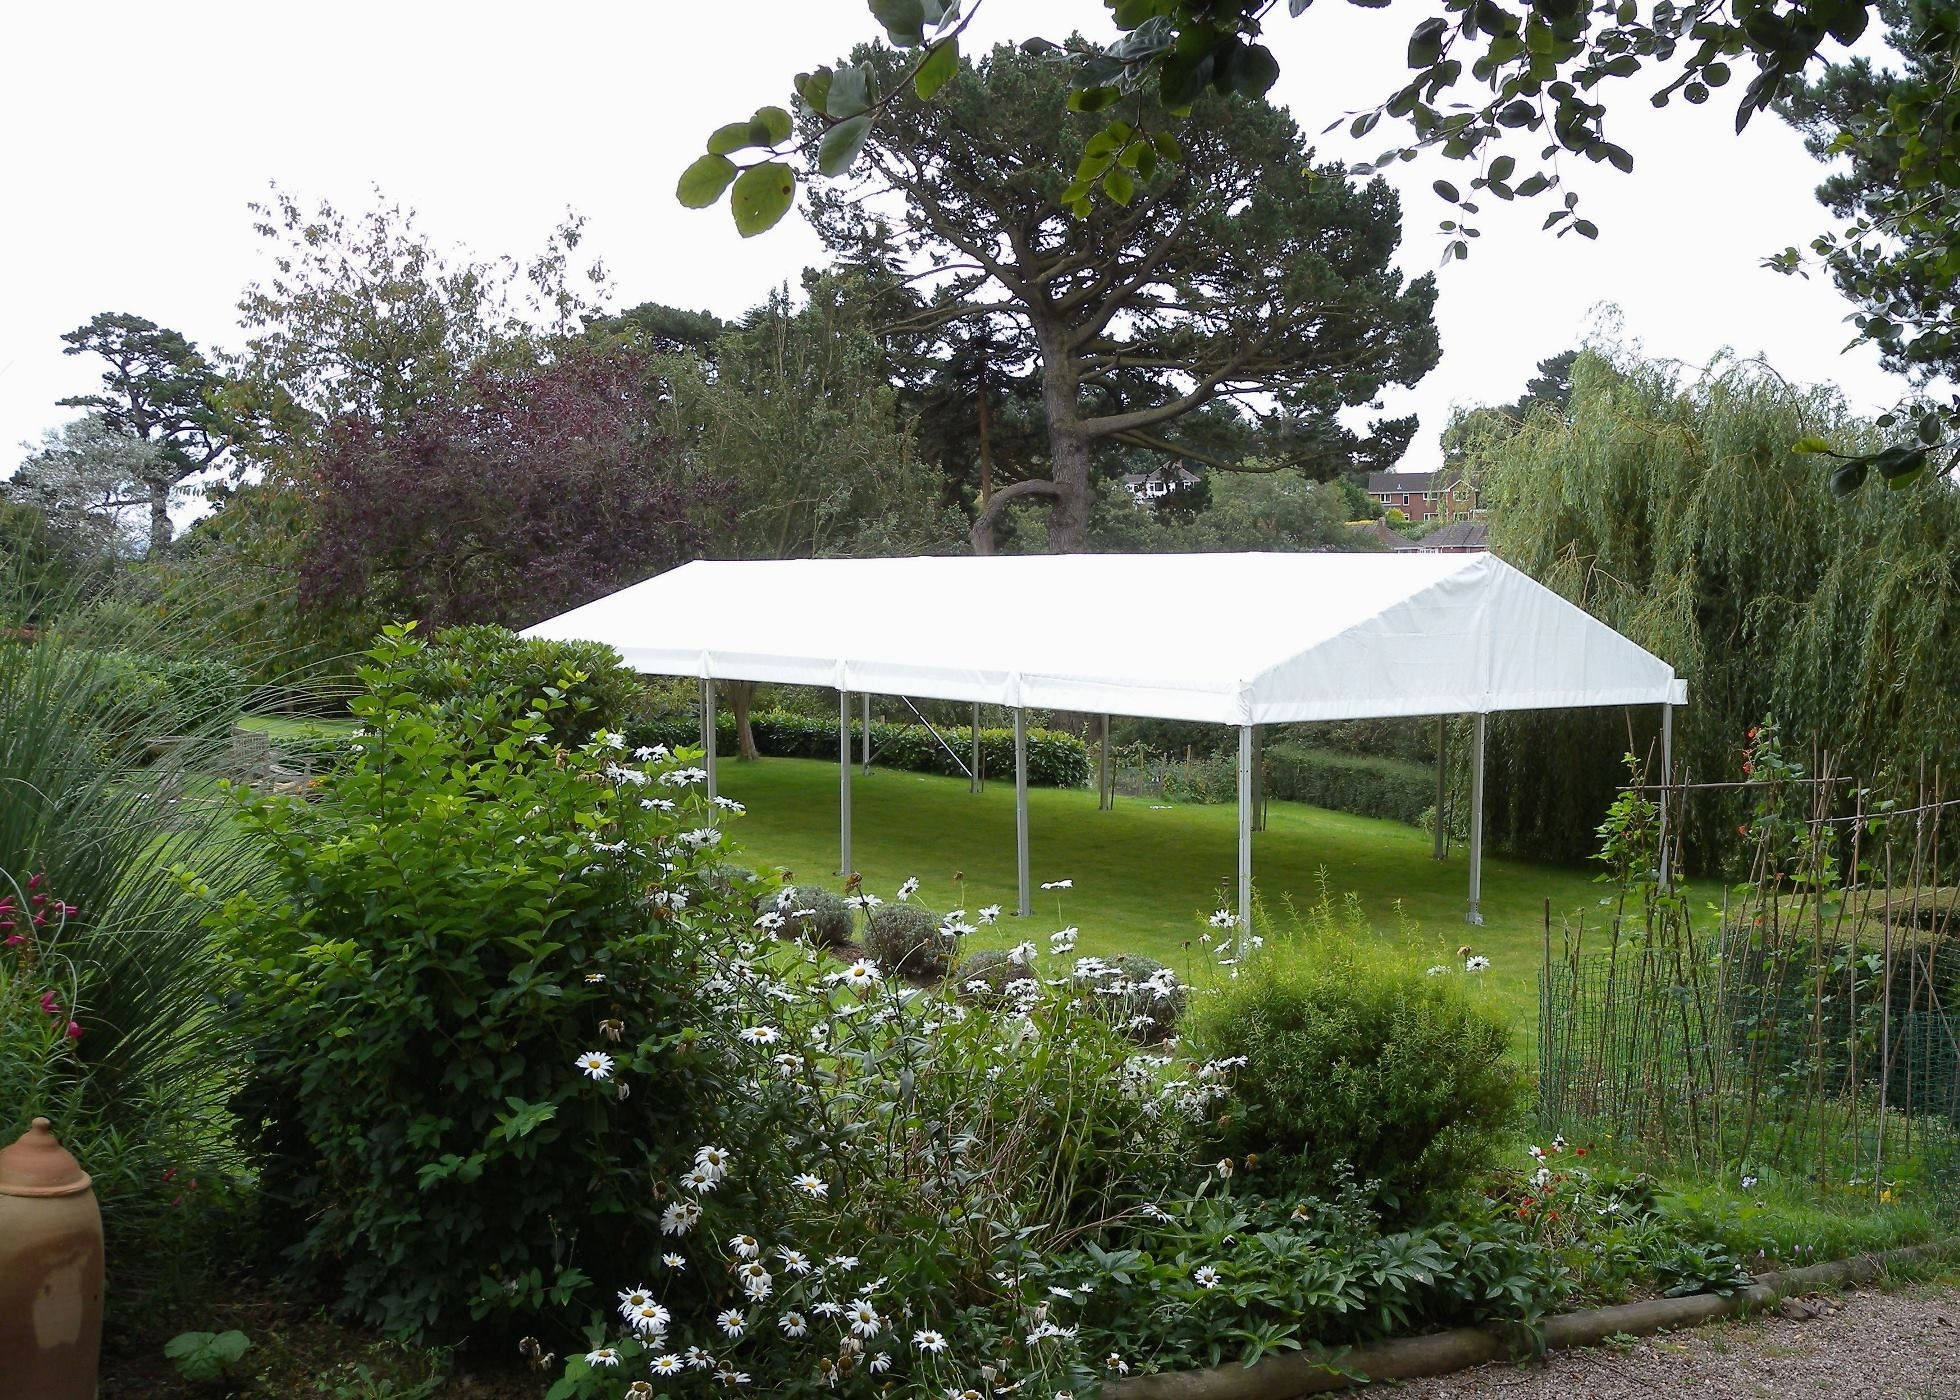 View of 6m x 15m clearspan marquee, roof-only, in garden